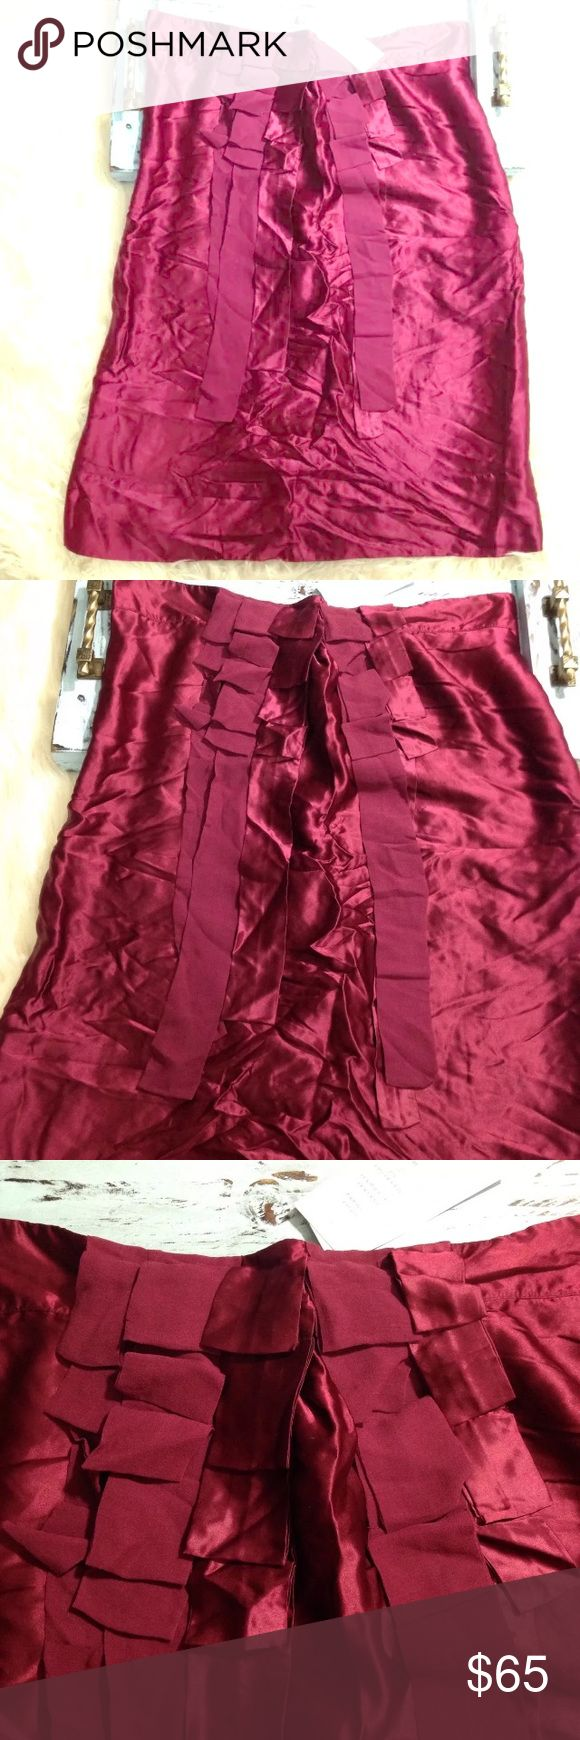 NEW French Connection 100% Silk Skirt Maroon NWT New with Tags French Connection 100% silk maroon knee length skirt in a size 10.  Beautiful detail on front of skirt.  Super comfortable and cute!! French Connection Skirts